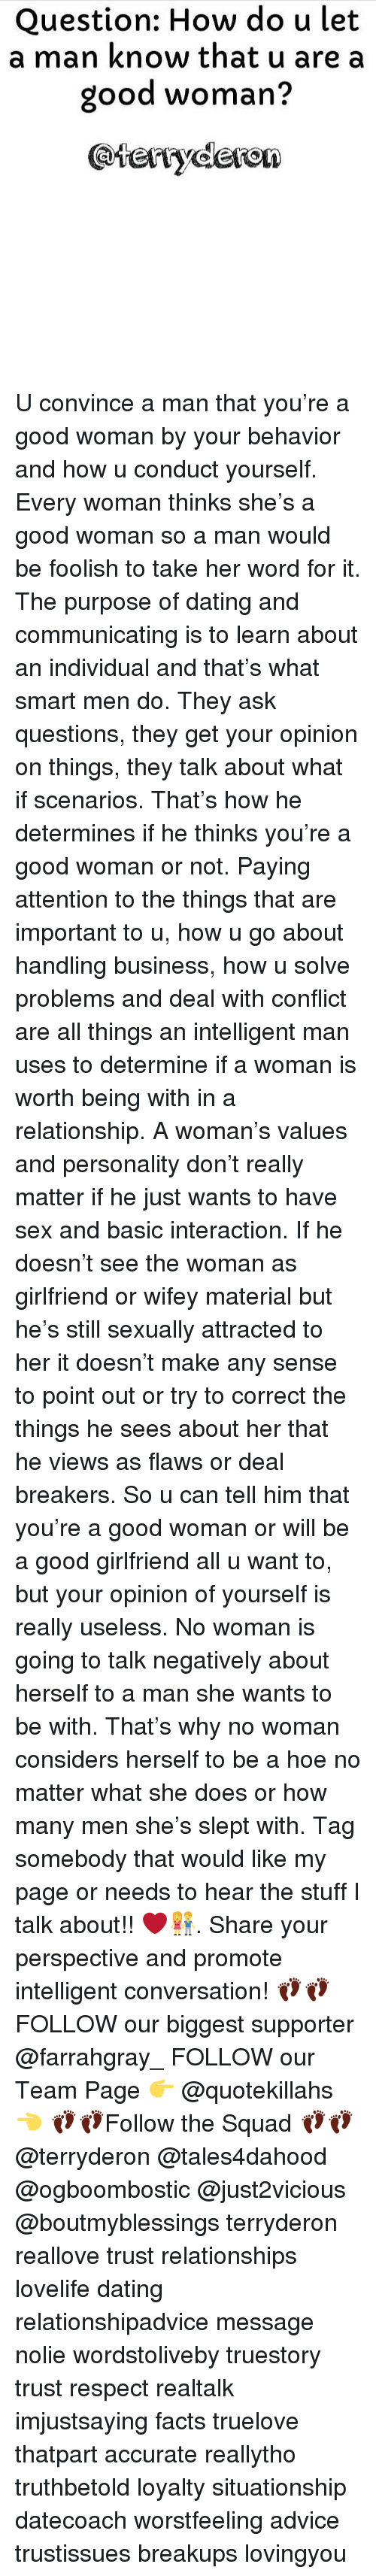 Thought differently, How to get him to have sex something is